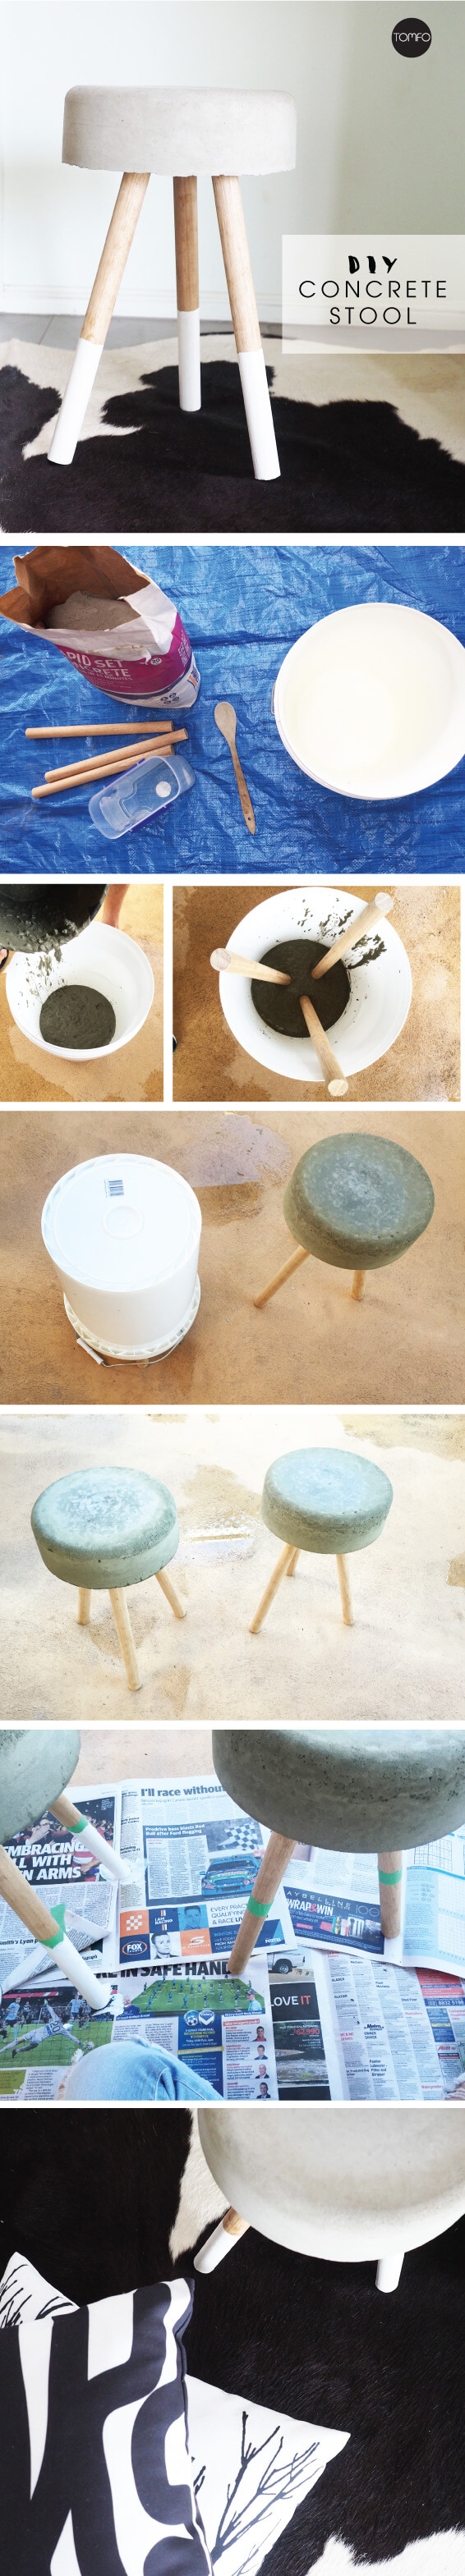 DIY-Concrete-Stools-Tutorial-Tomfo